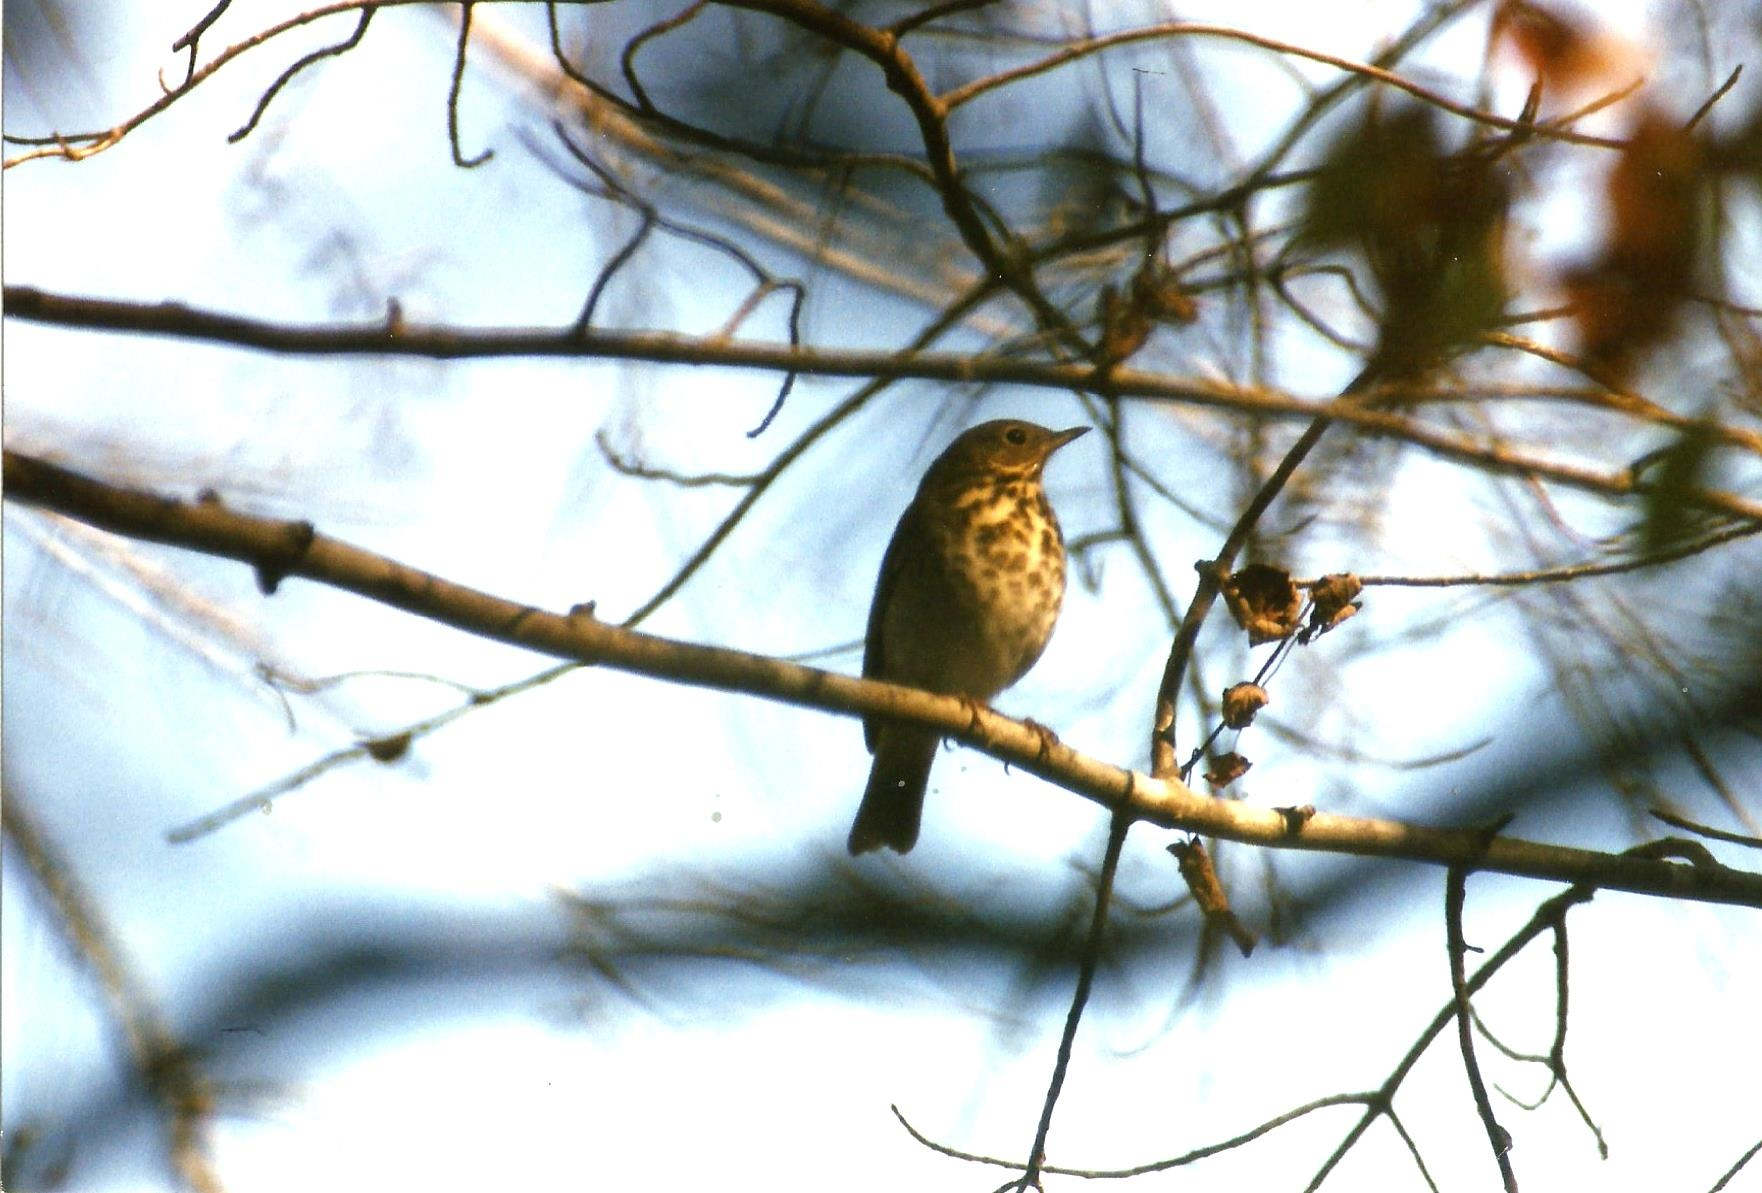 THE WOODLAND HERMIT THRUSH by Hope Atwood Dayhoff